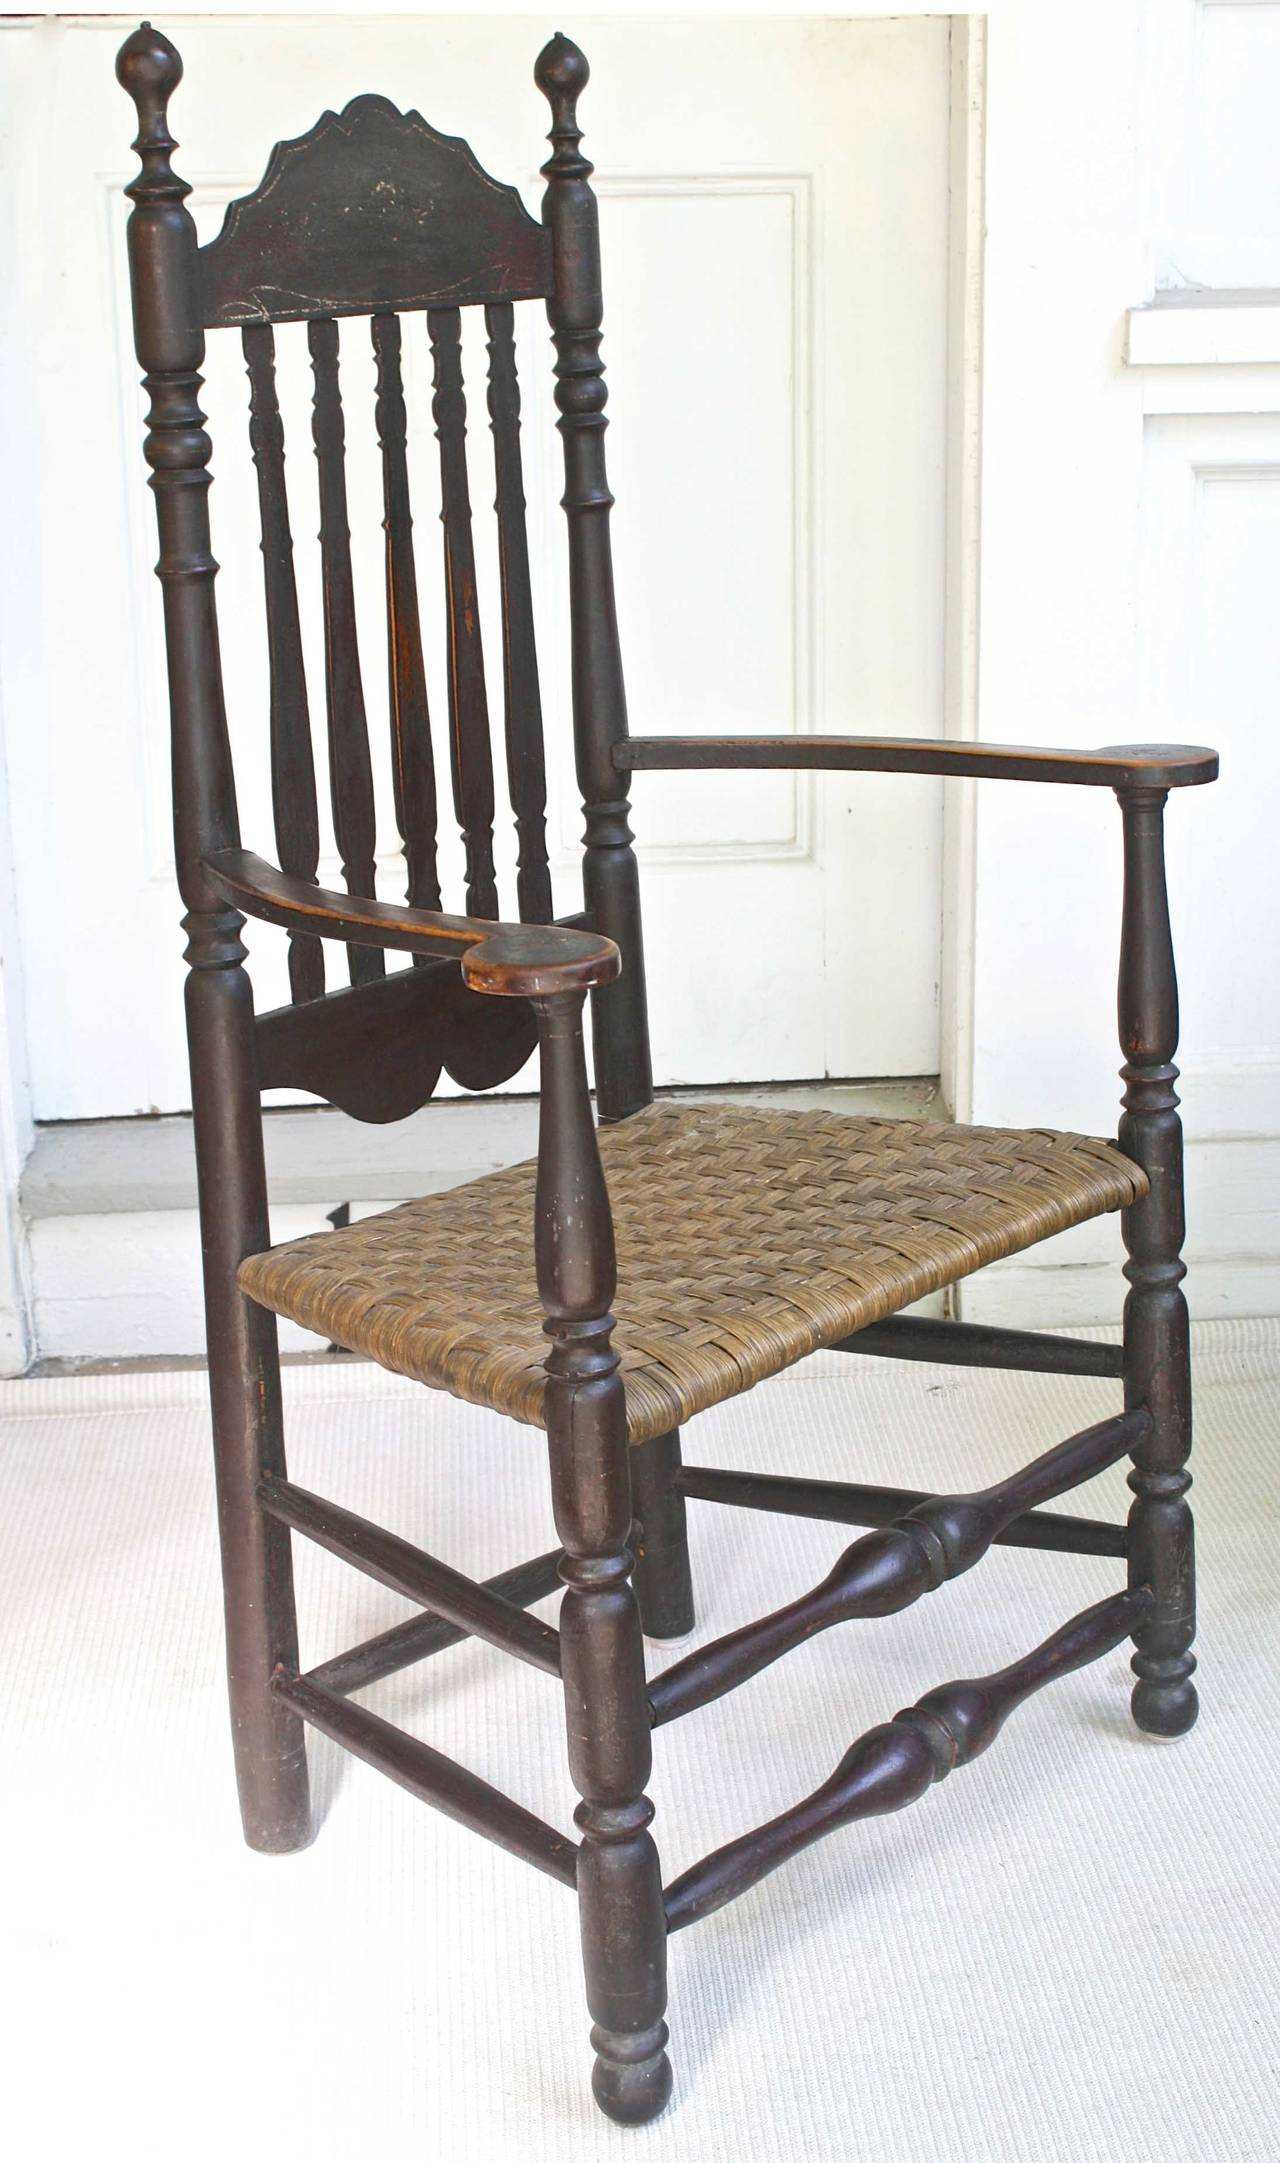 An exemplary American maple bannister back armchair with copious ring turnings, scalloped crest and lower back rails, in worn dark umber  paint; with a very old, appropriate and serviceable woven splint seat.  Of Massachusetts coastal origin and